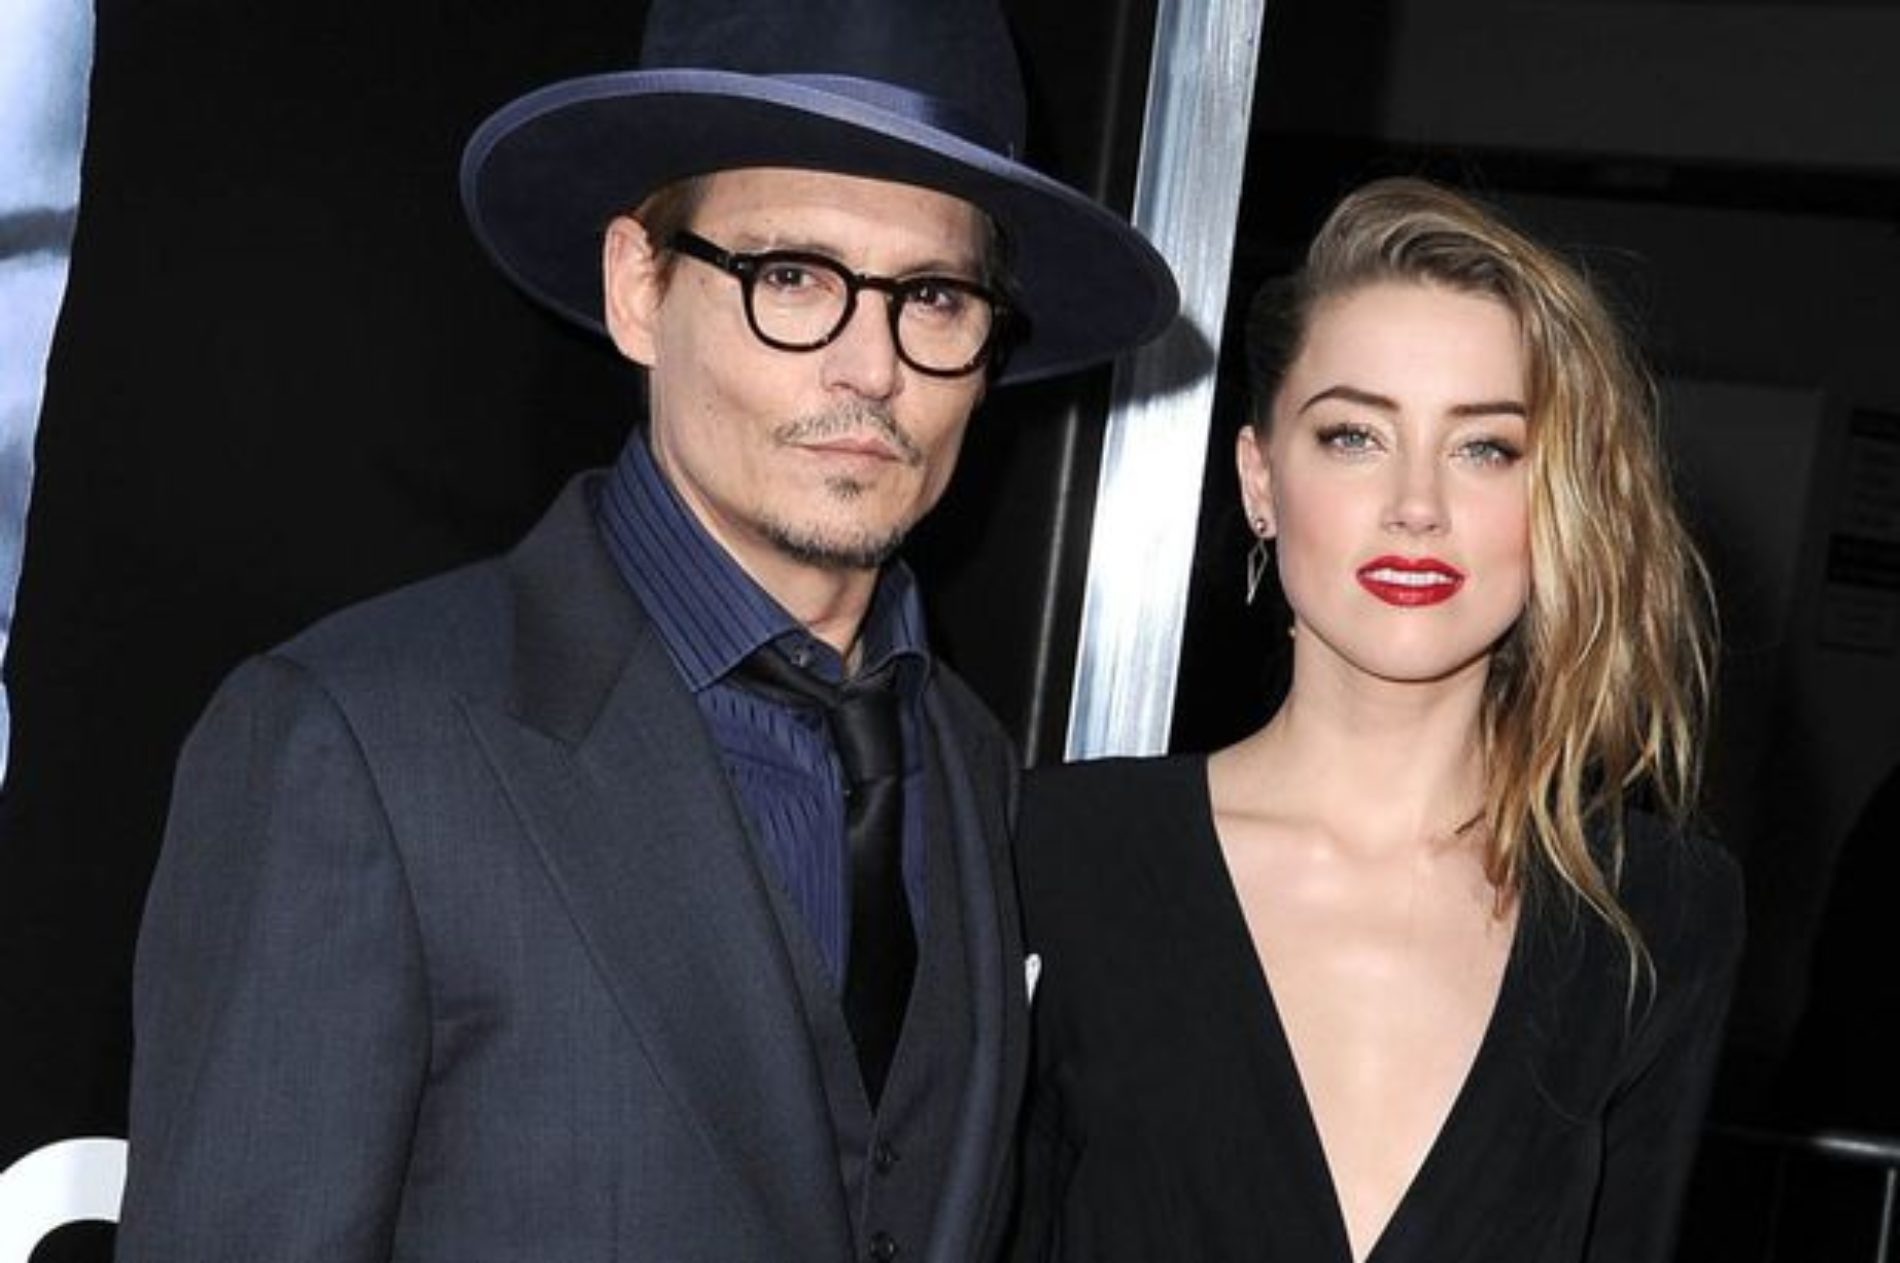 'Marrying Johnny Depp does not define my sexuality.' Says Amber Heard